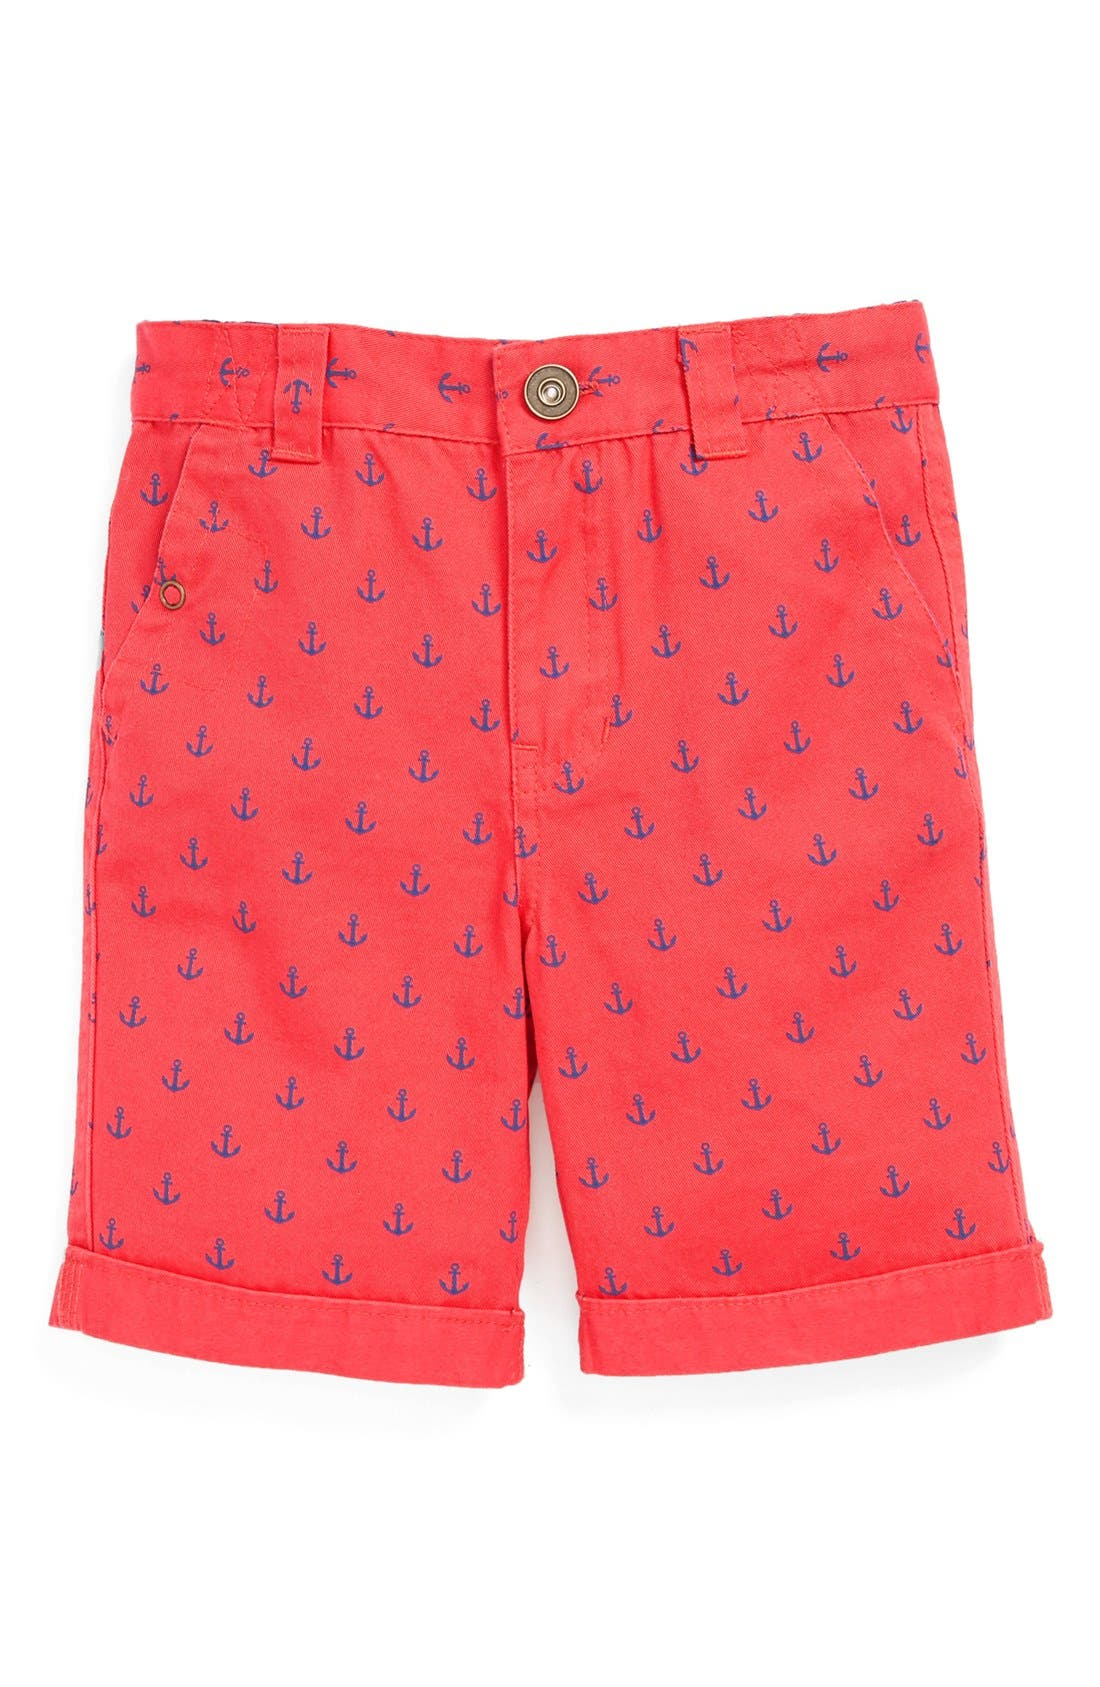 Alternate Image 1 Selected - Sovereign Code 'Starboard' Shorts (Baby Boys)